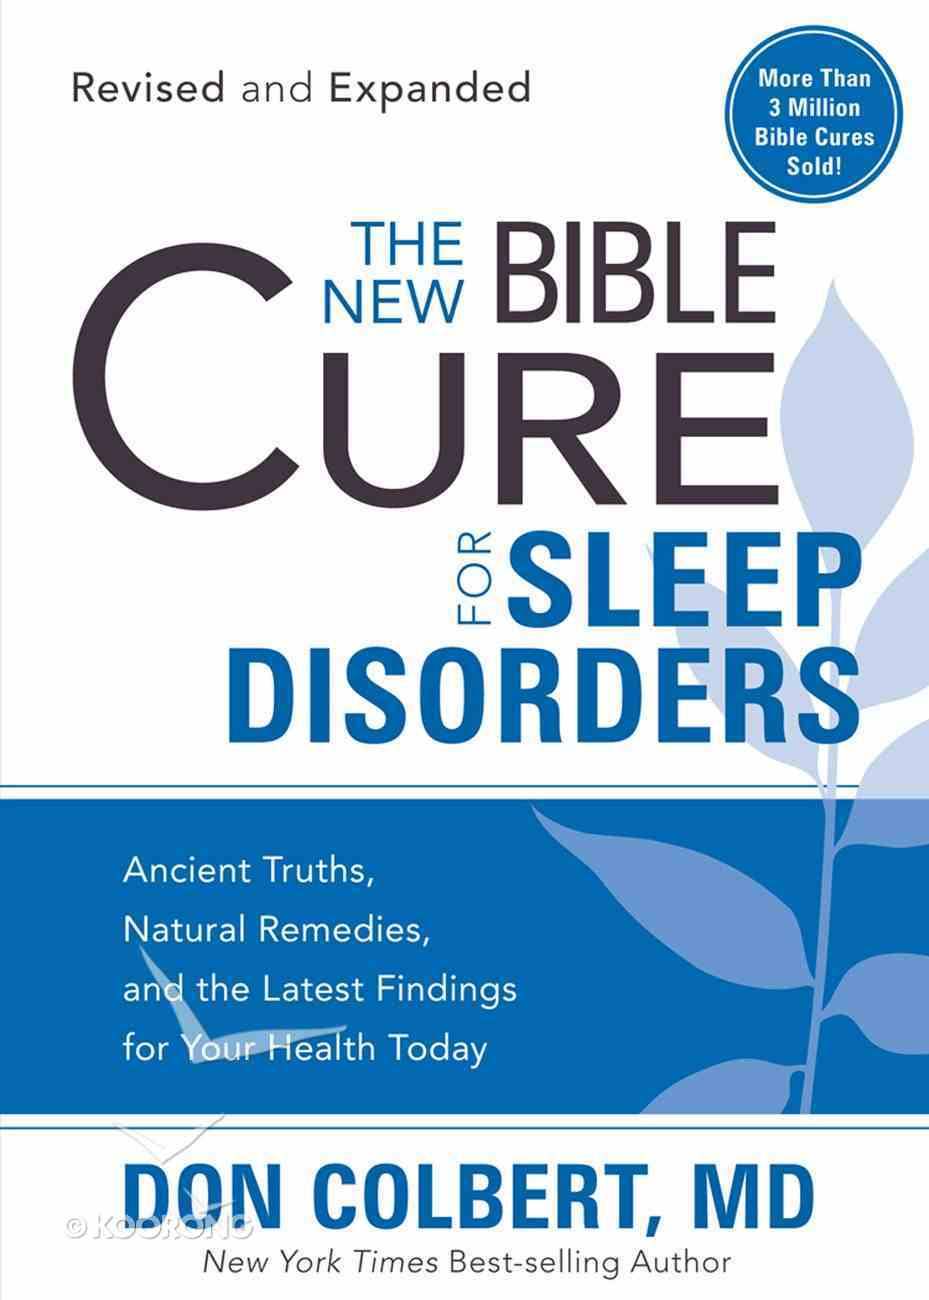 The New Bible Cure For Sleep Disorders (The New Bible Cure Series) eBook